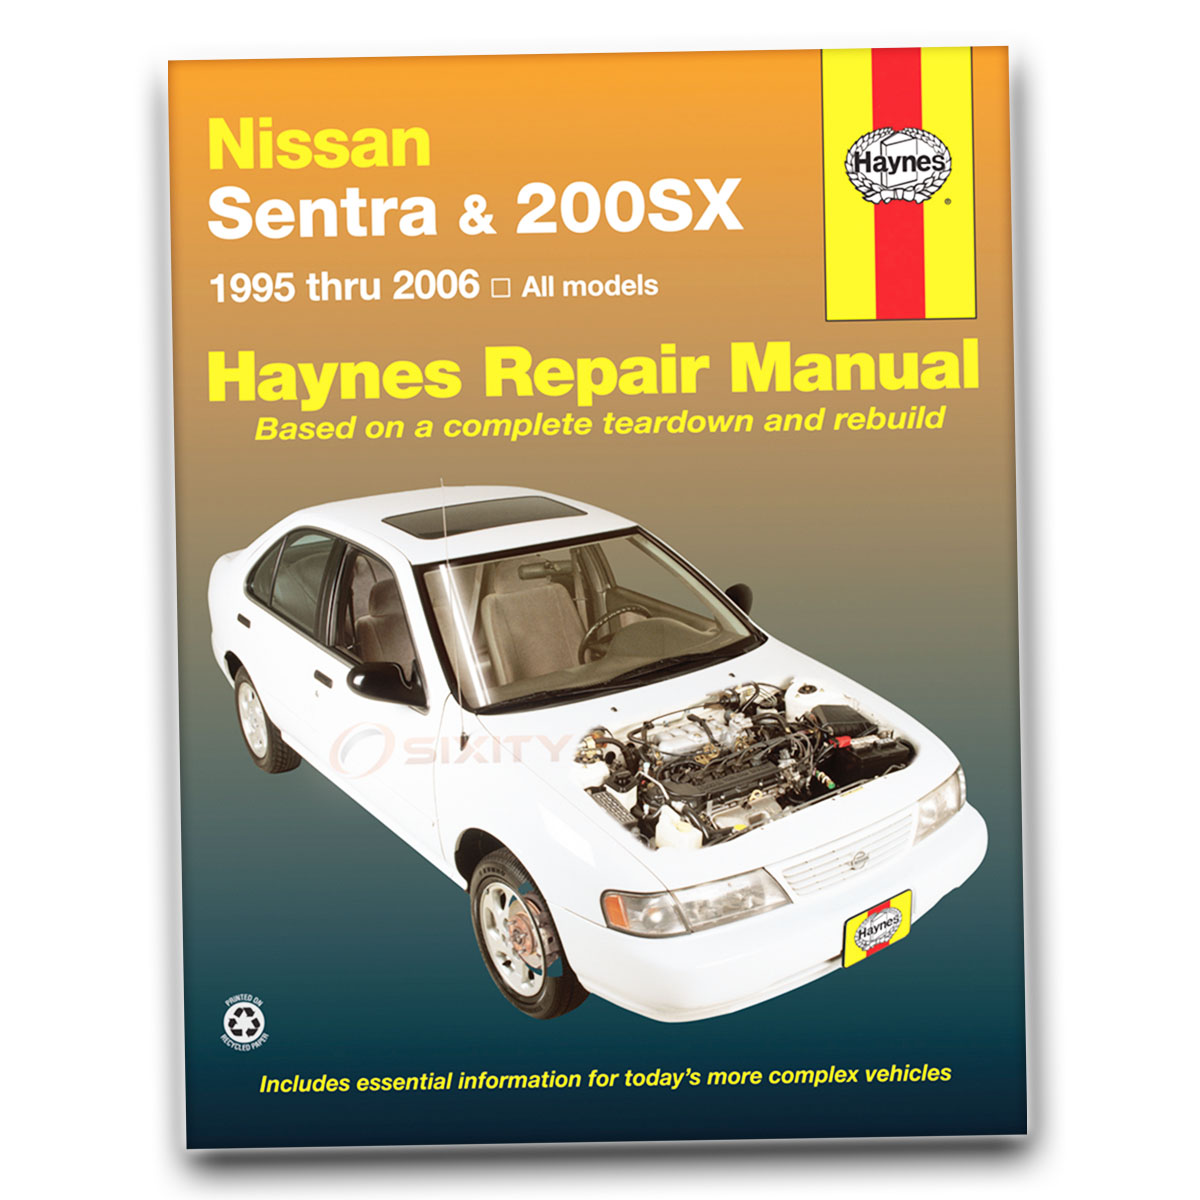 Garage Auto 95 Details About Haynes Repair Manual For 1995 1998 Nissan 200sx Shop Service Garage Book Dn